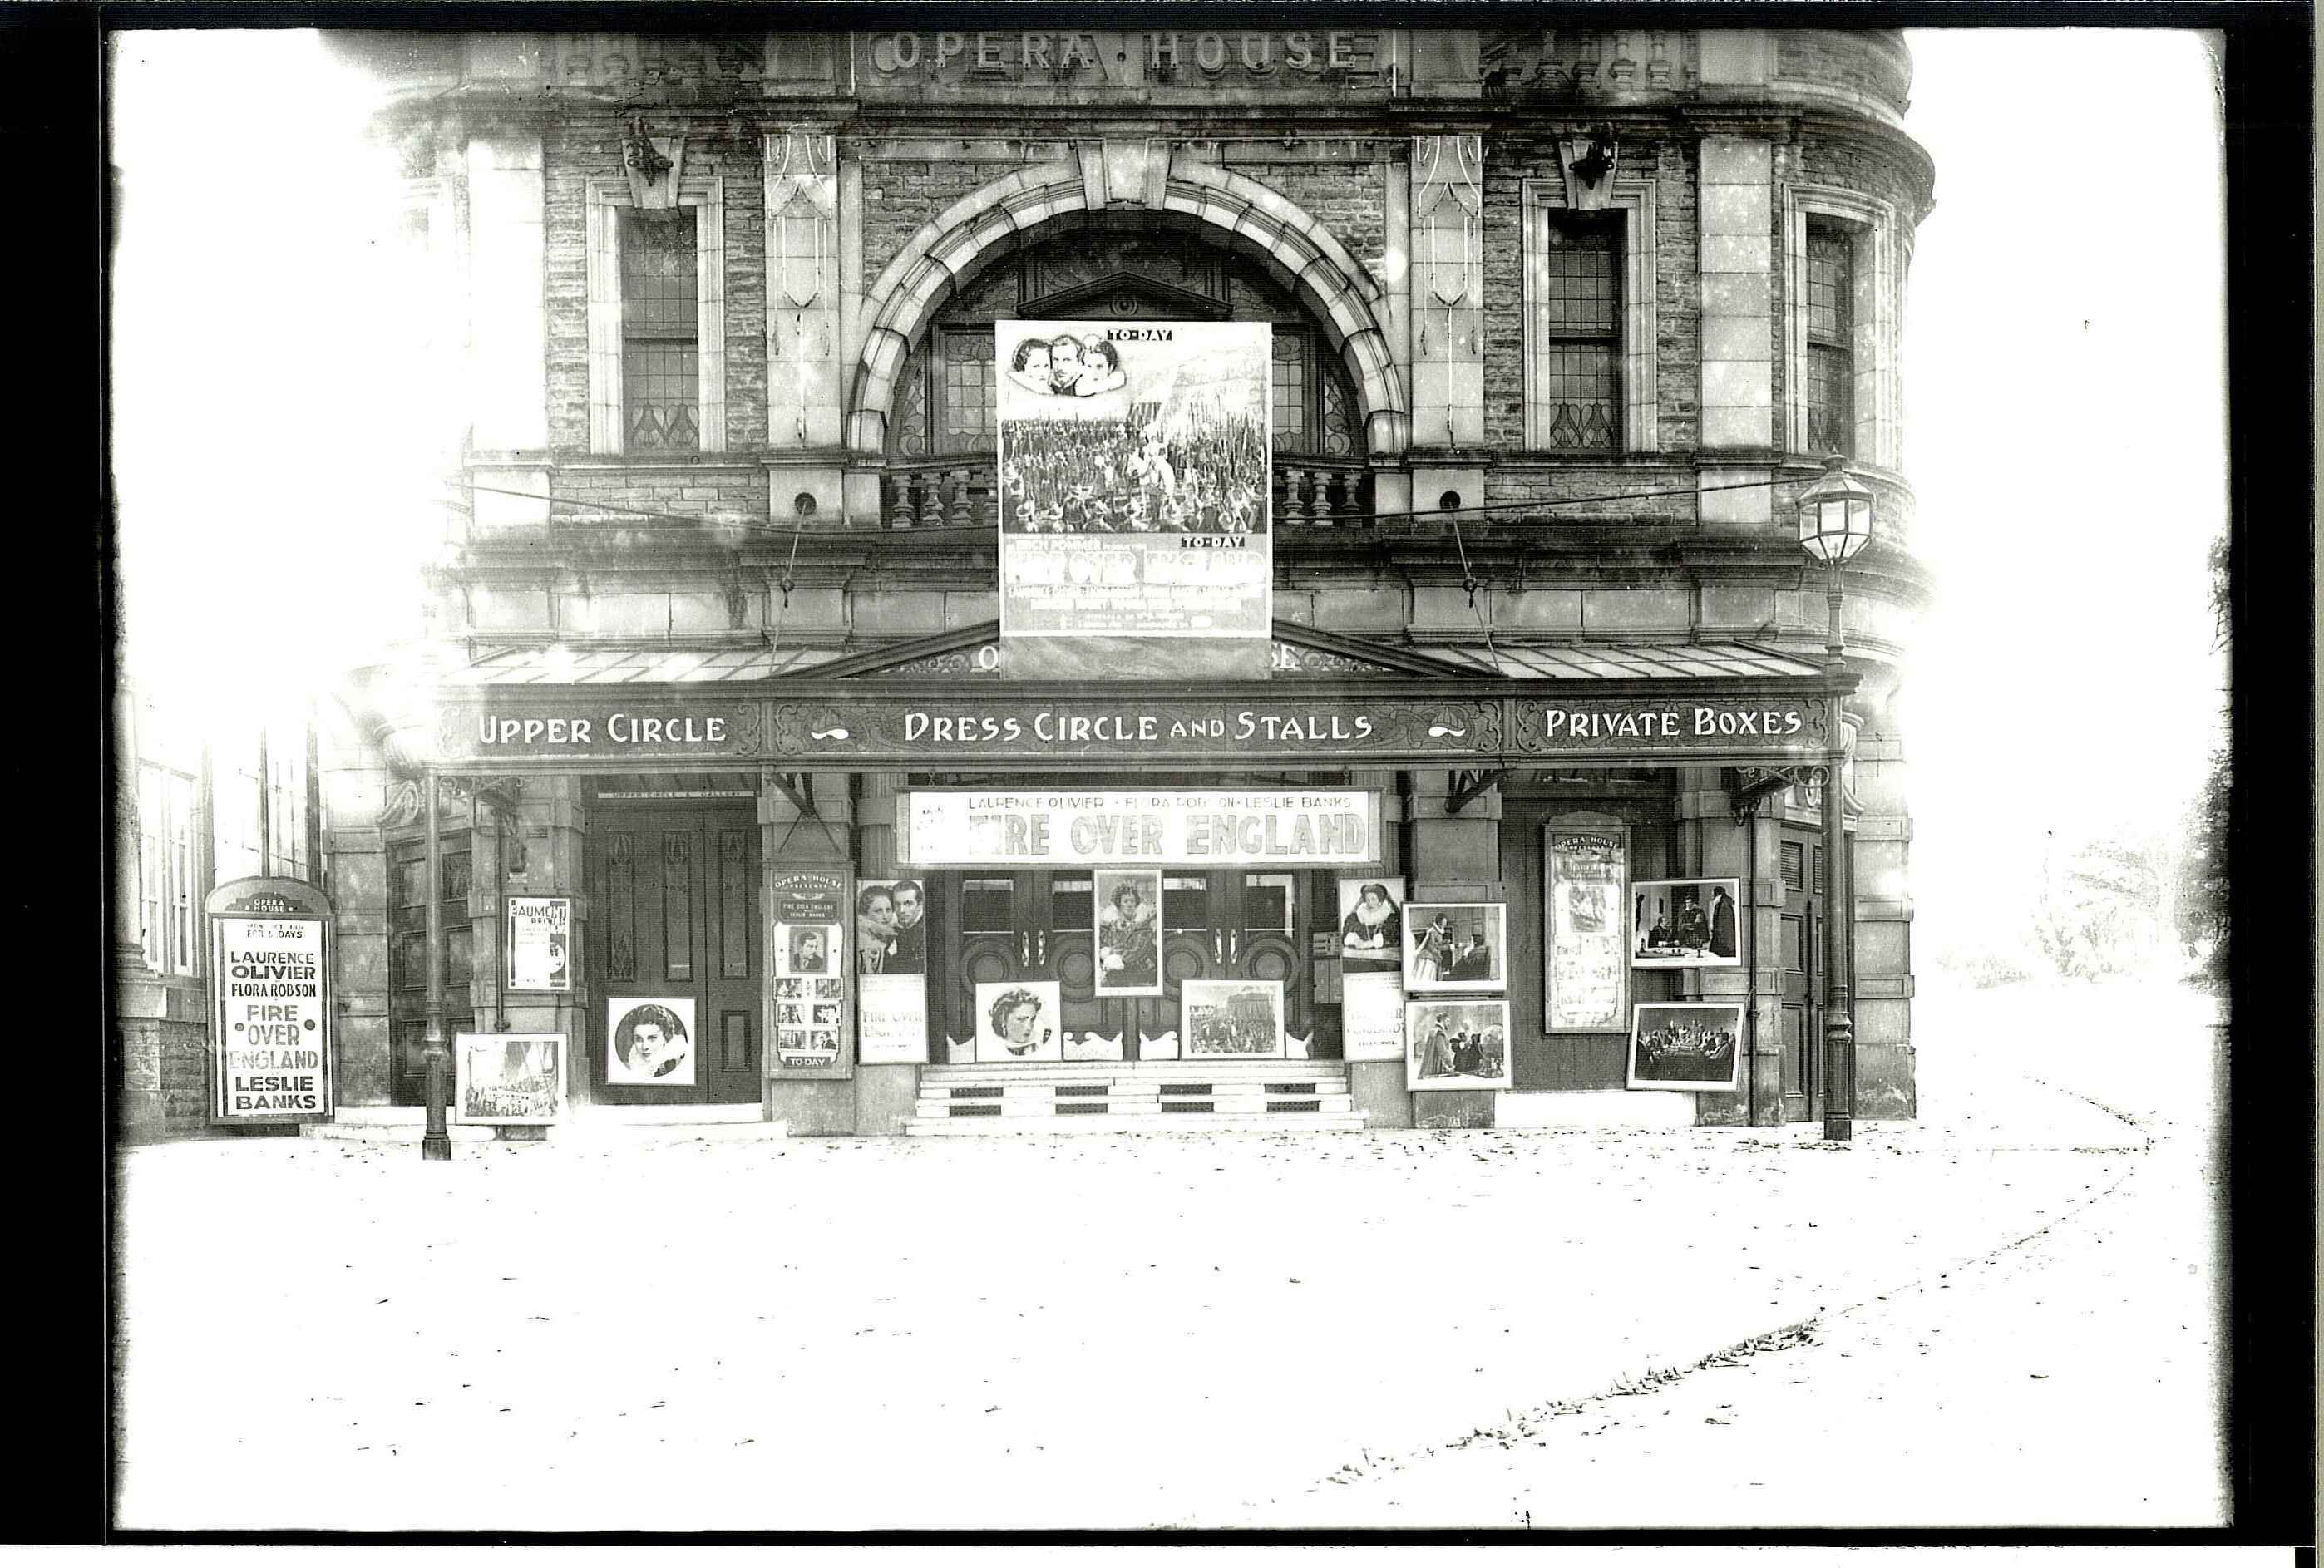 Exterior of Buxton Opera House 11th July 1937. At this time the building was also a cinema. 'Fire Over England', starring Laurence Olivier, is advertised.